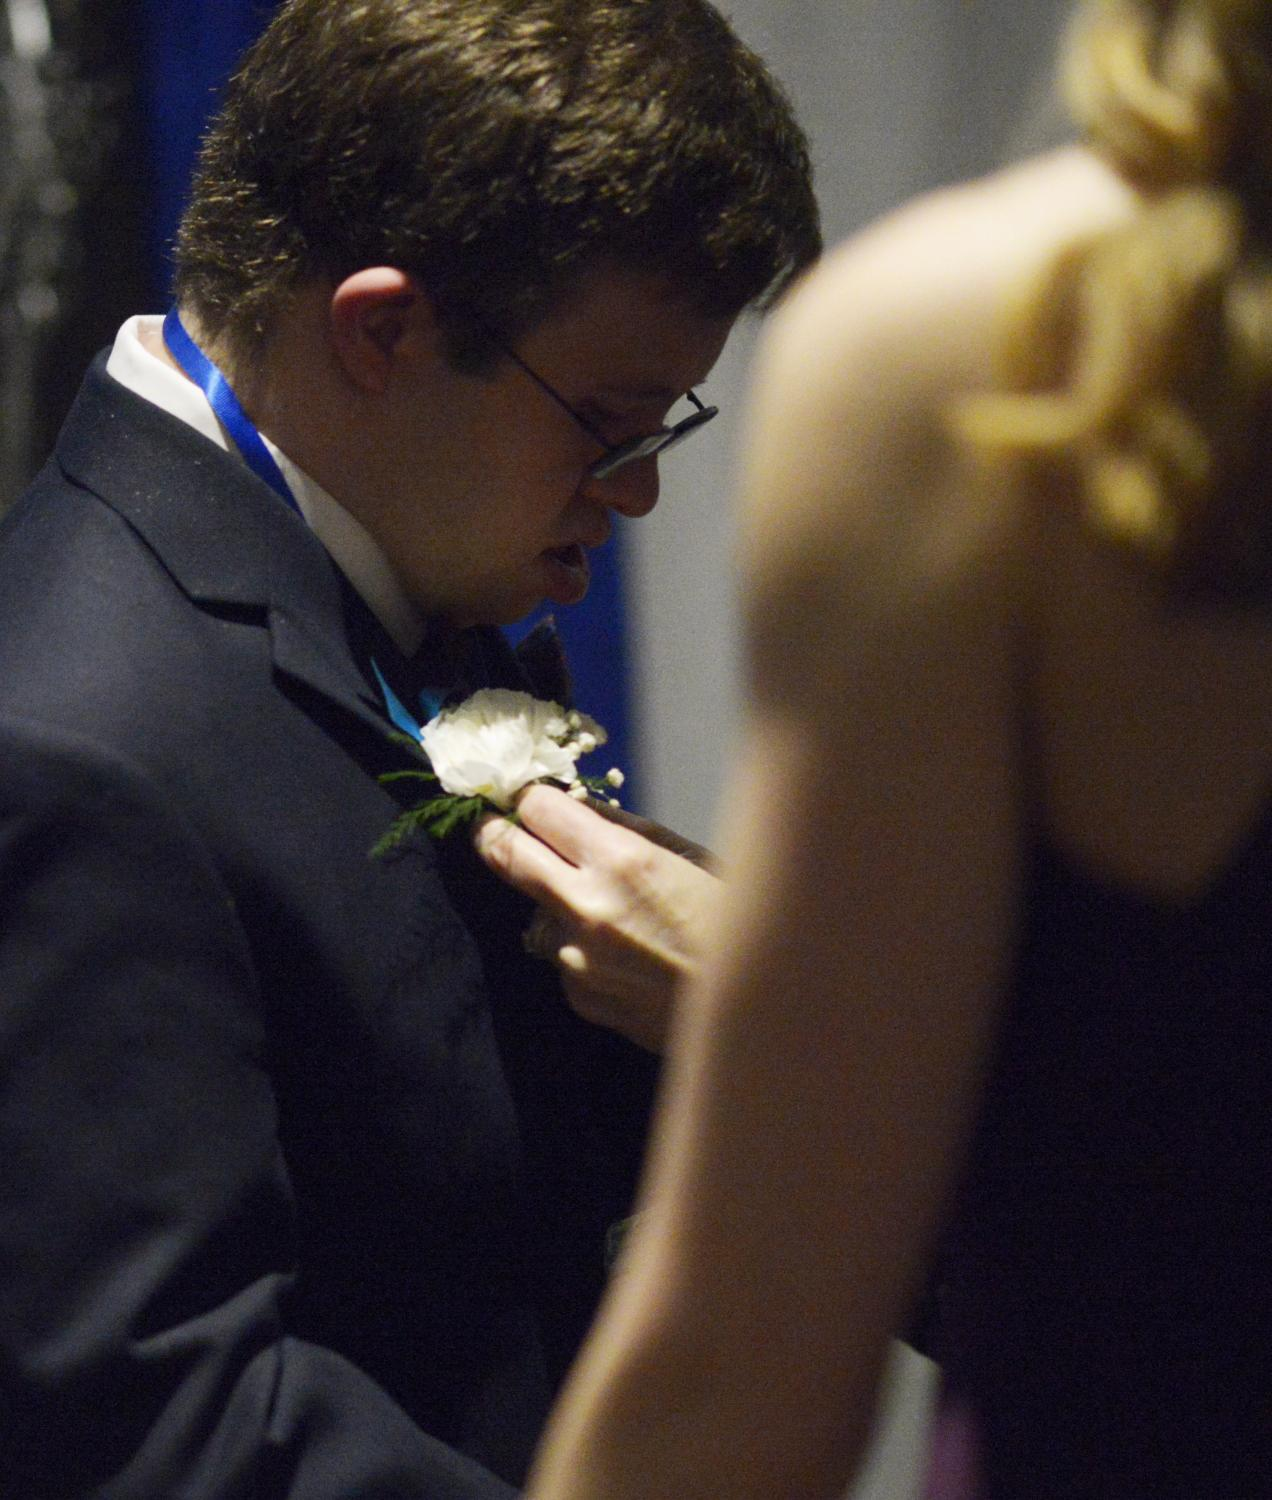 Christopher Mussatt receives a white boutonnière from event volunteer Betsy Borsheski on Friday, Feb. 7, 2020, at The Crossing in Columbia. Every guest was given a corsage or boutonnière upon arriving.